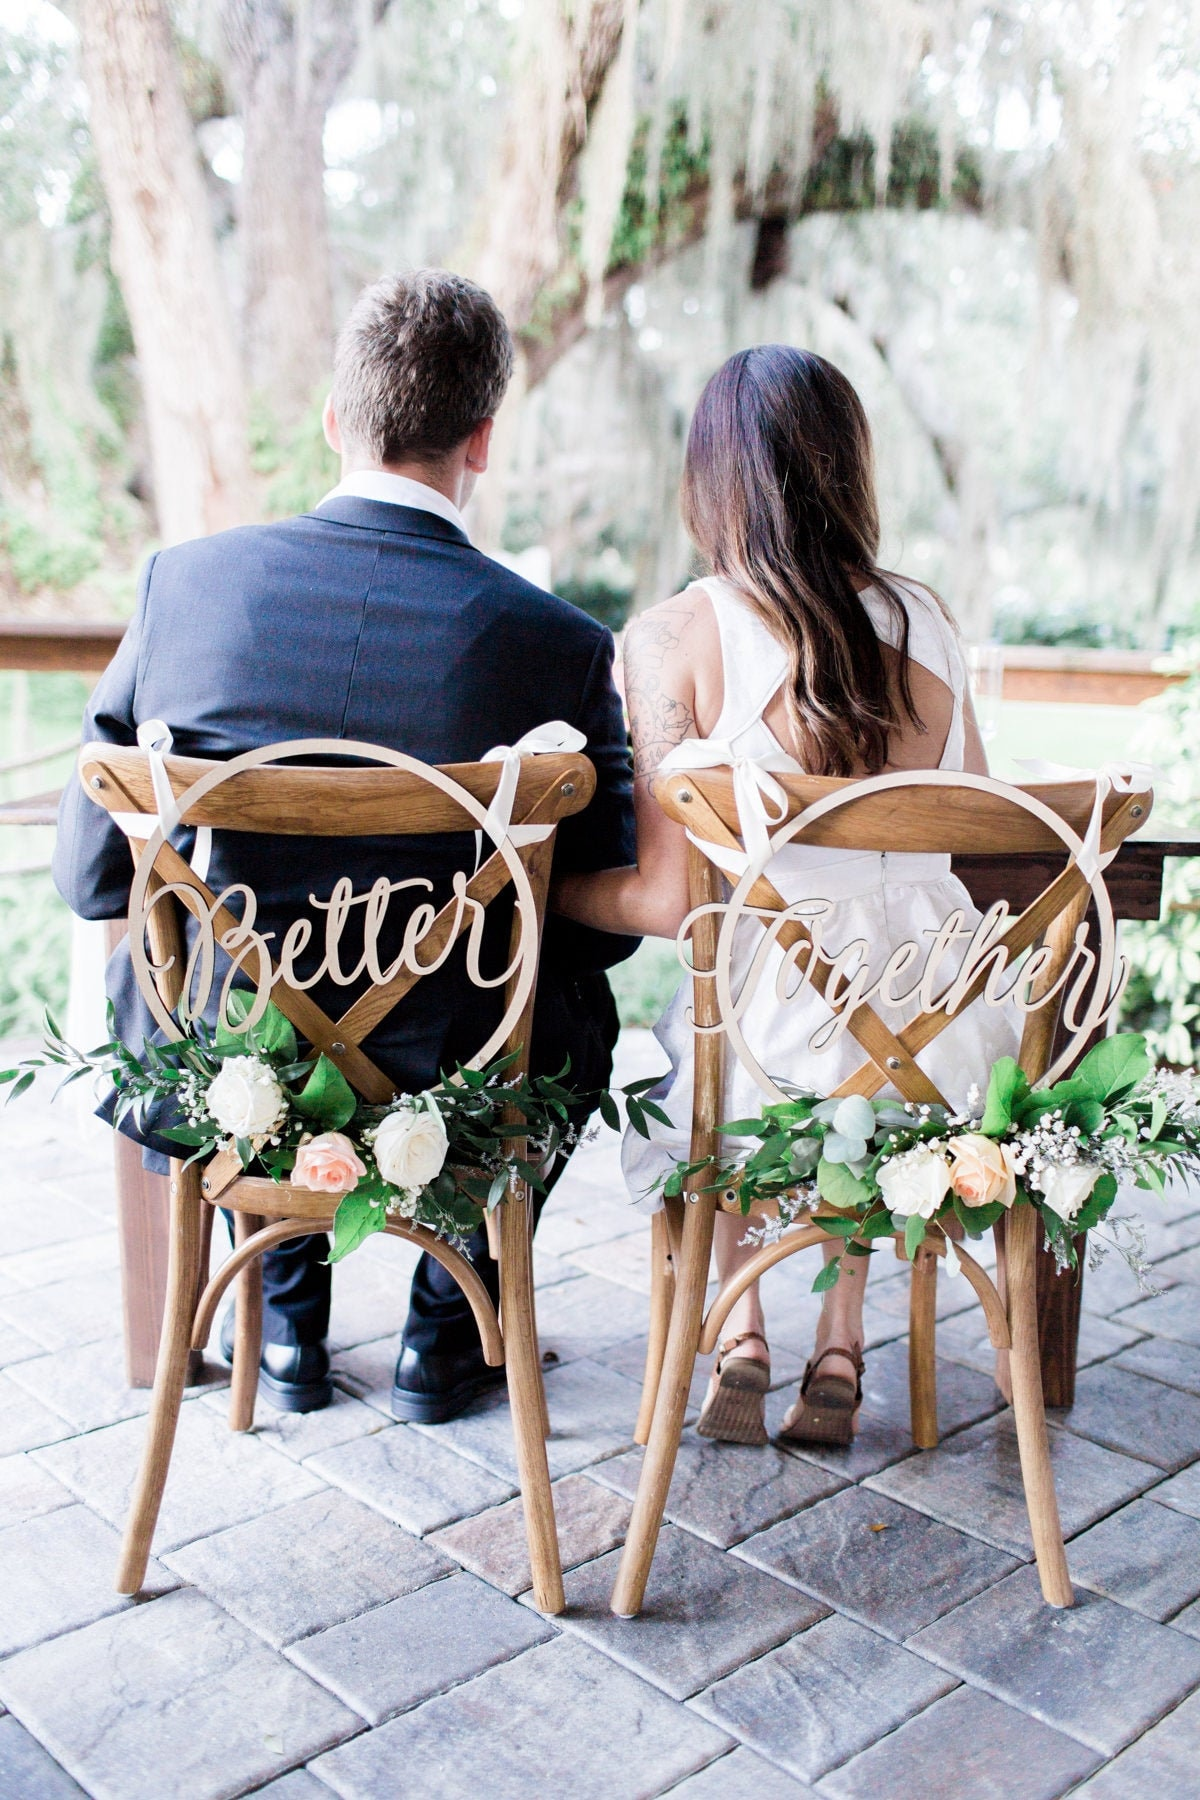 Wedding Chair Signs Hoop Style Better Together Chairs, Floral Calligraphy Wooden Hanging Set Circle | Item - Bth200